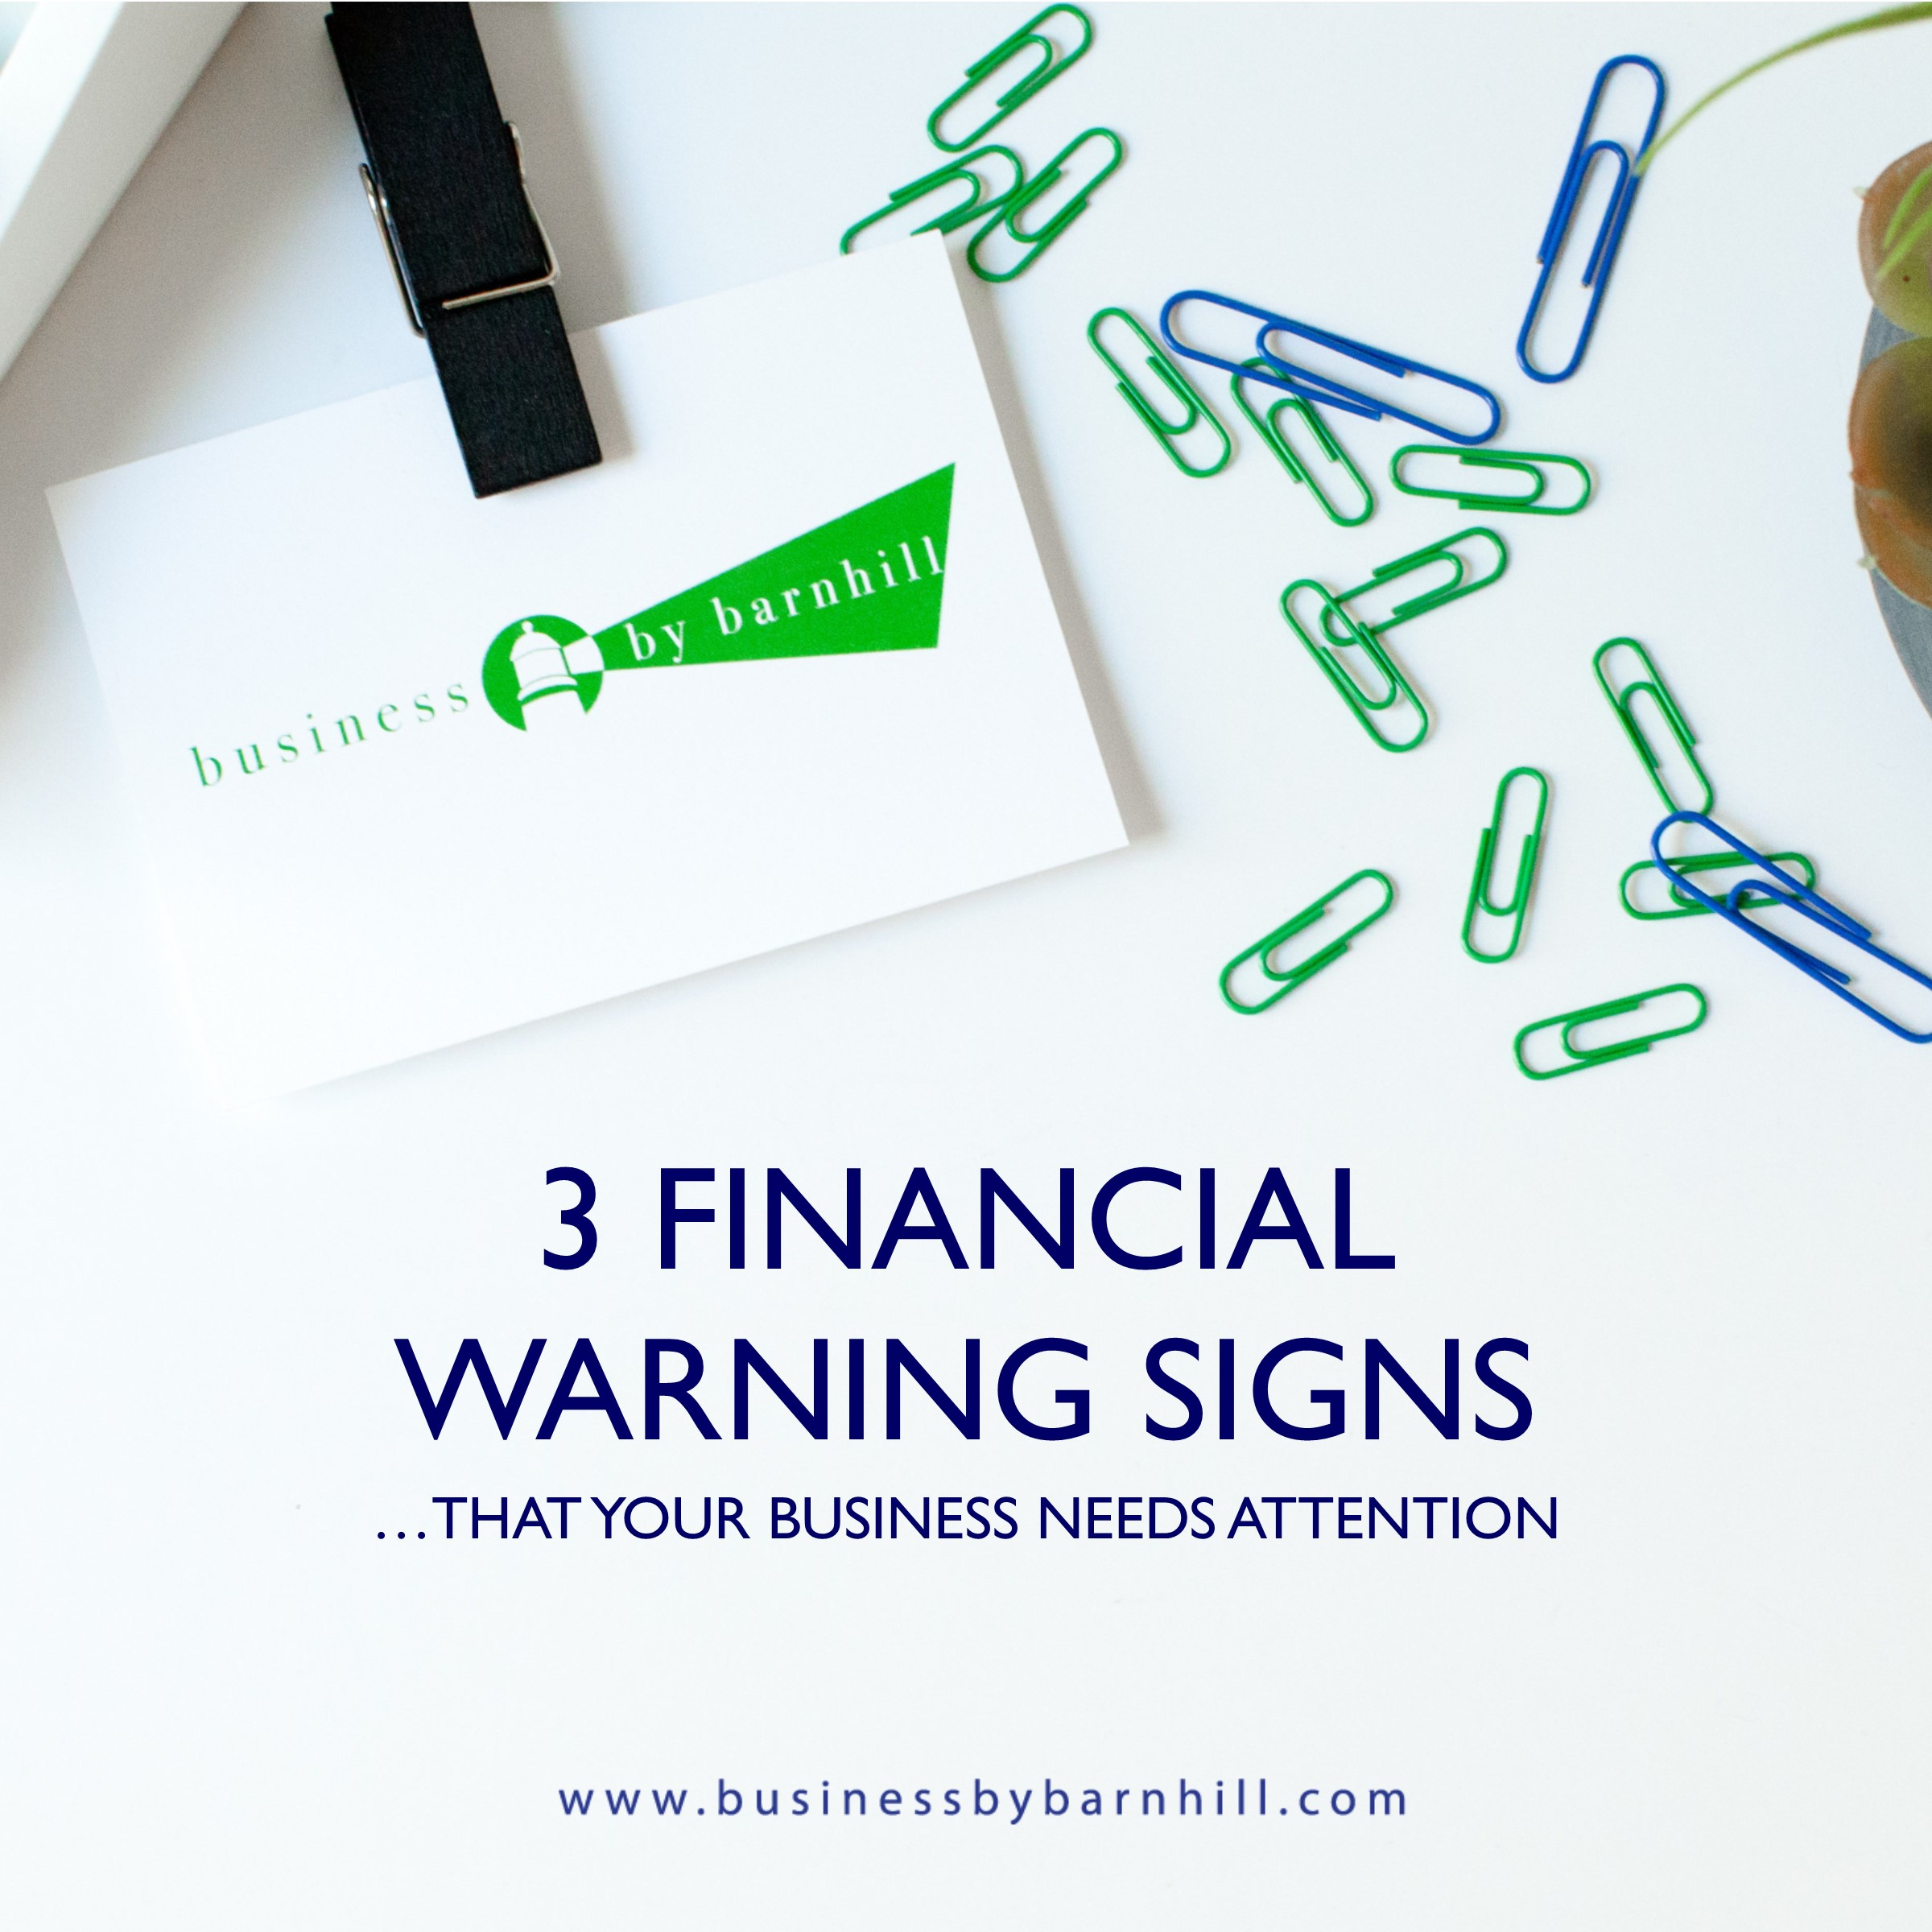 business by barnhill 3 financial warning signs that your business needs attention.jpg